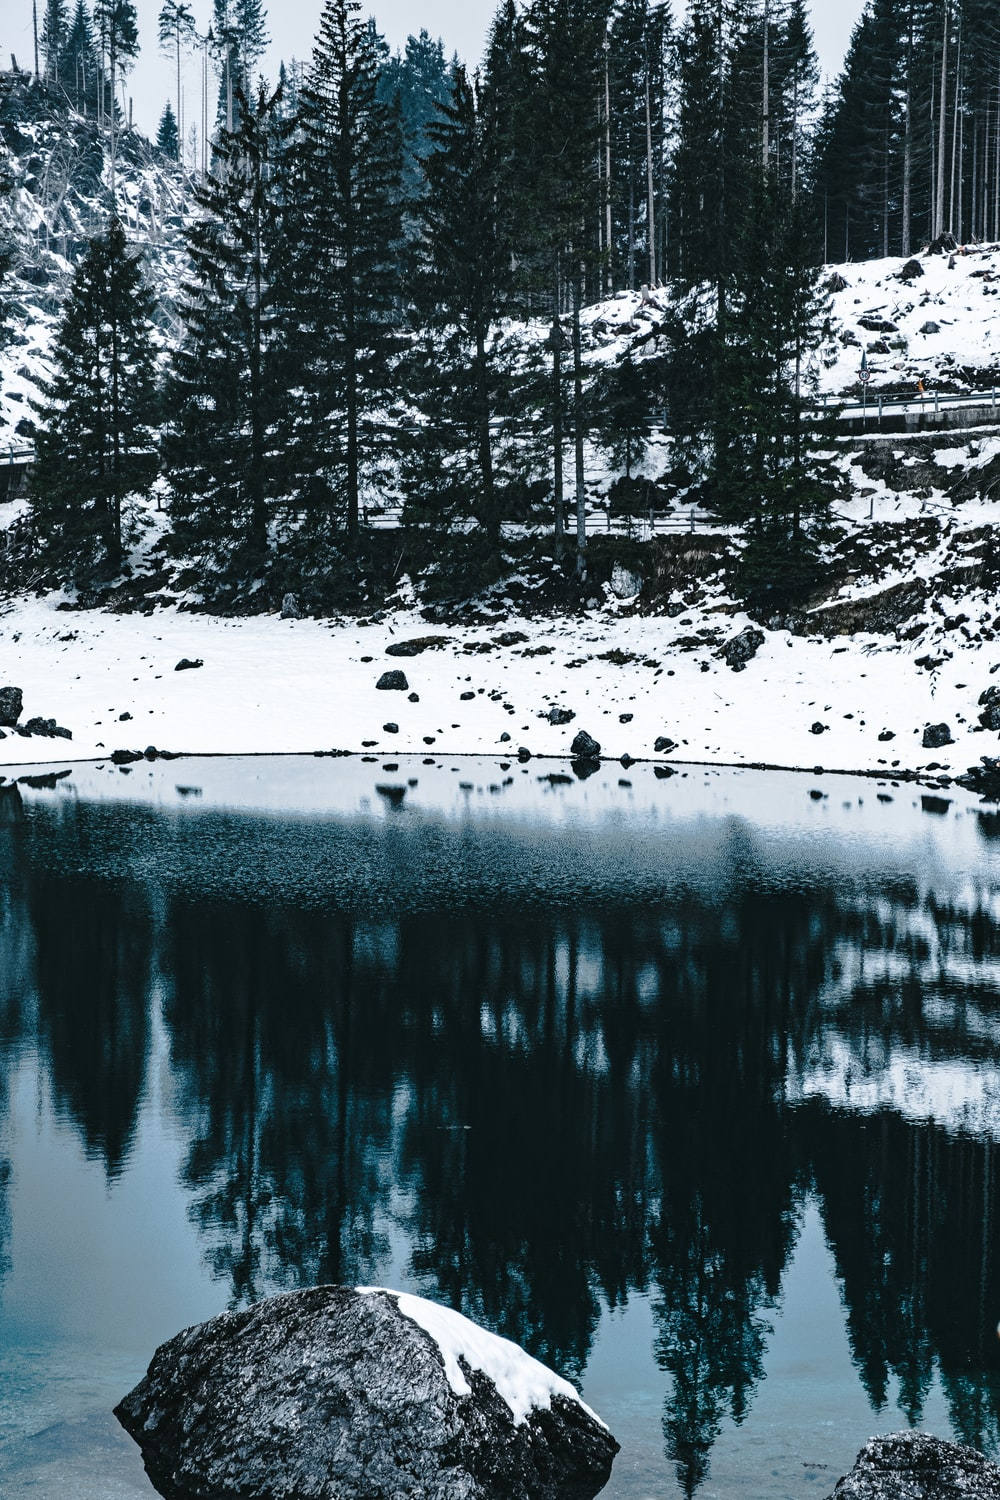 body of water near trees covered with snow